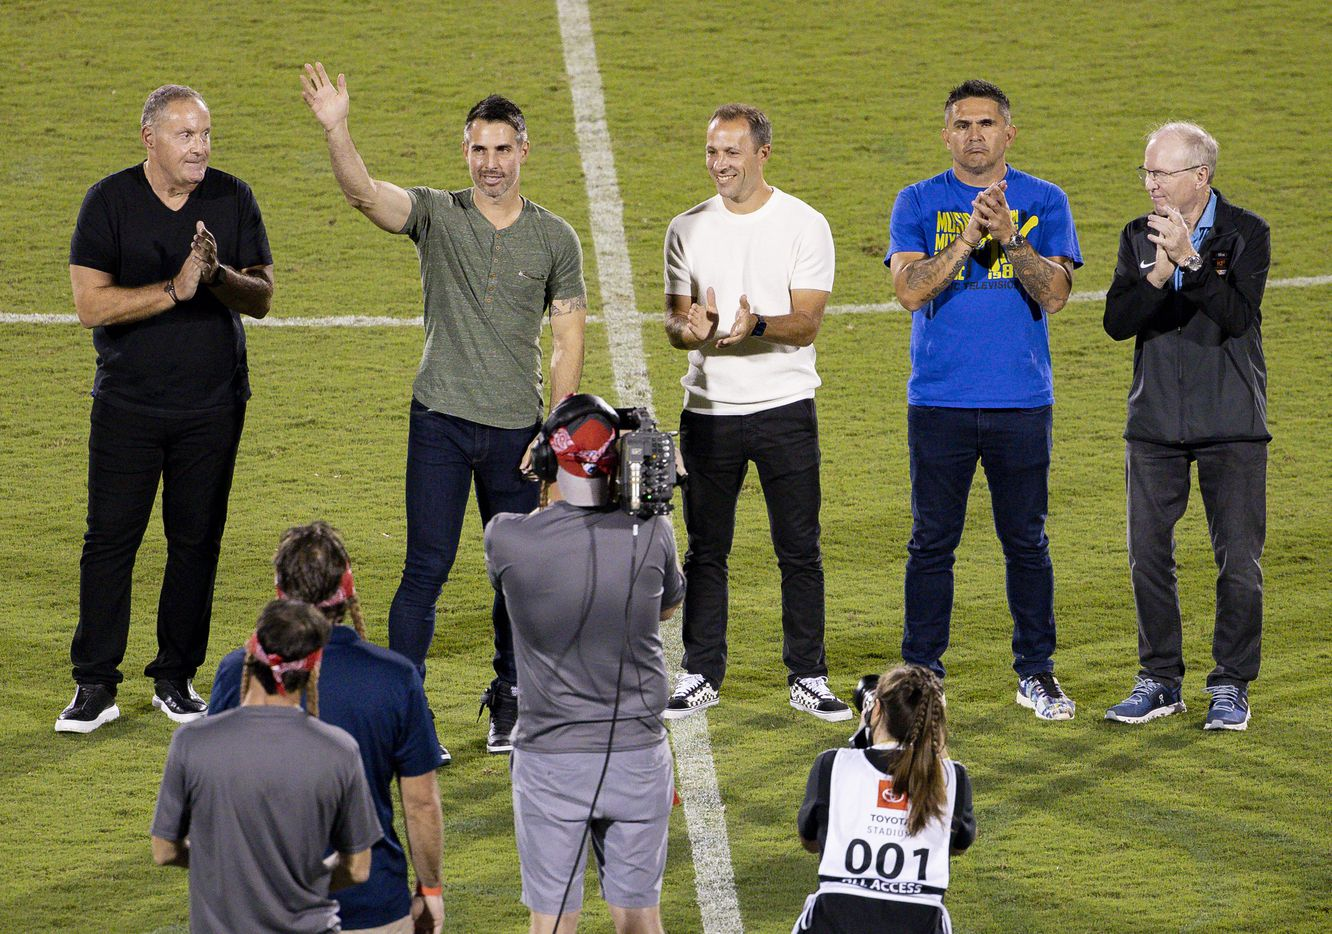 2020 National Soccer Hall of Fame inductee Carlos Bocanegra waves while being introduced with other 2020 and 2021 inductees during the halftime of a FC Dallas against Minnesota United on Saturday, Oct. 2, 2021, at Toyota Stadium in Frisco. (Juan Figueroa/The Dallas Morning News)